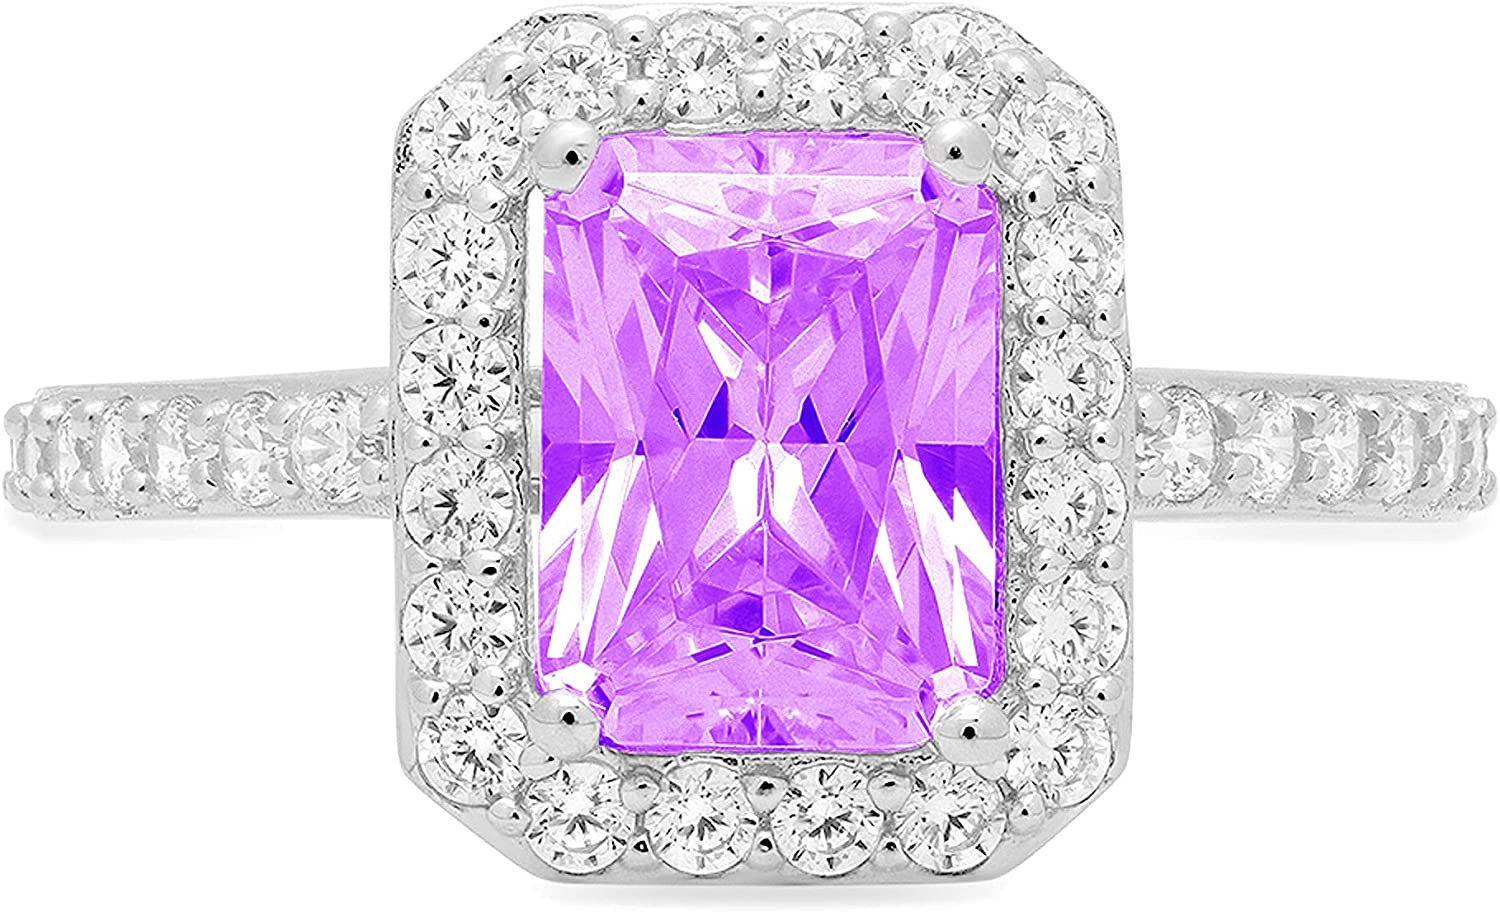 2.04ct Brilliant Emerald Cut Solitaire with Accent Halo Natural Purple Amethyst Gem Stone VVS1 Designer Modern Statement Ring Solid 14k White Gold Clara Pucci